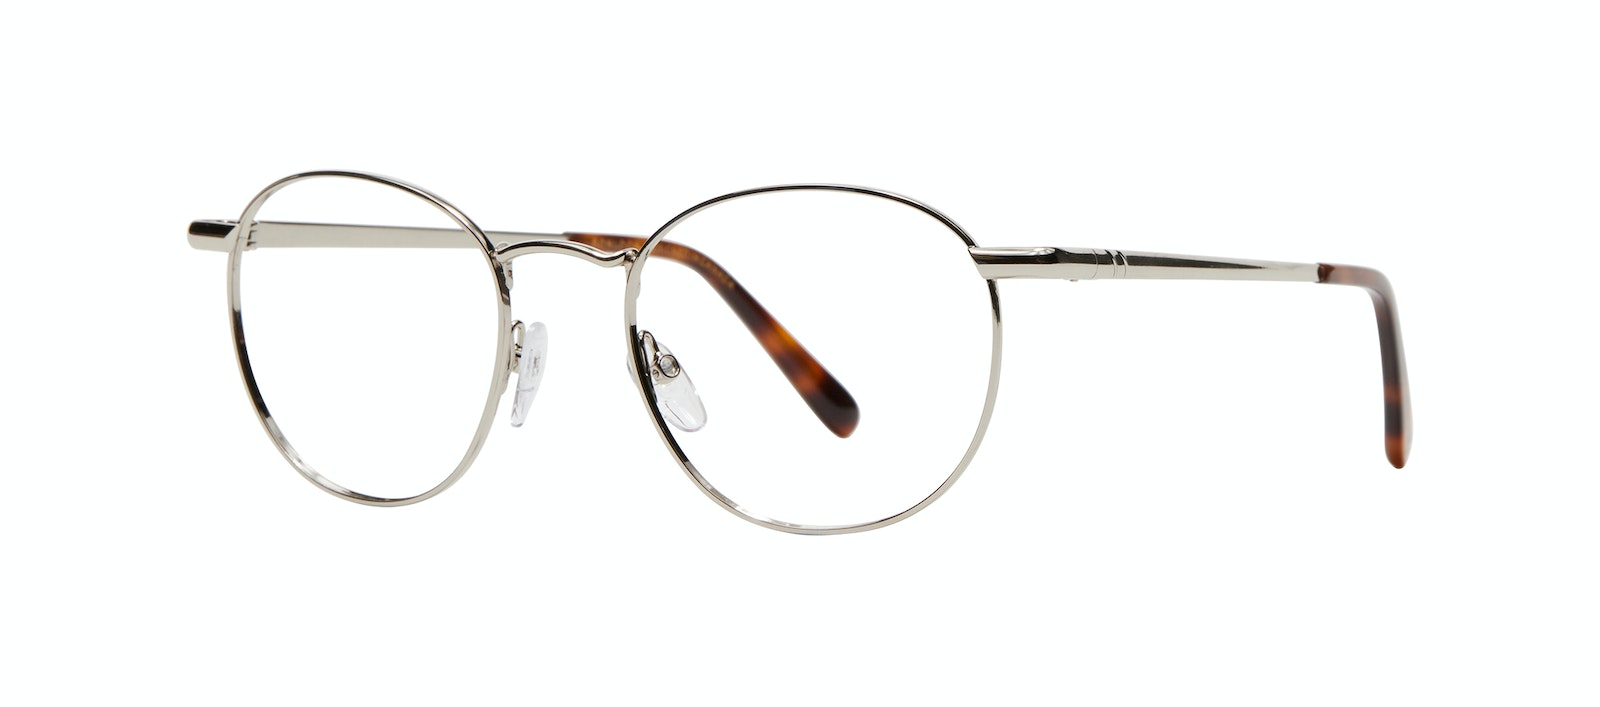 Affordable Fashion Glasses Round Eyeglasses Men Women Divine M Silver Tilt